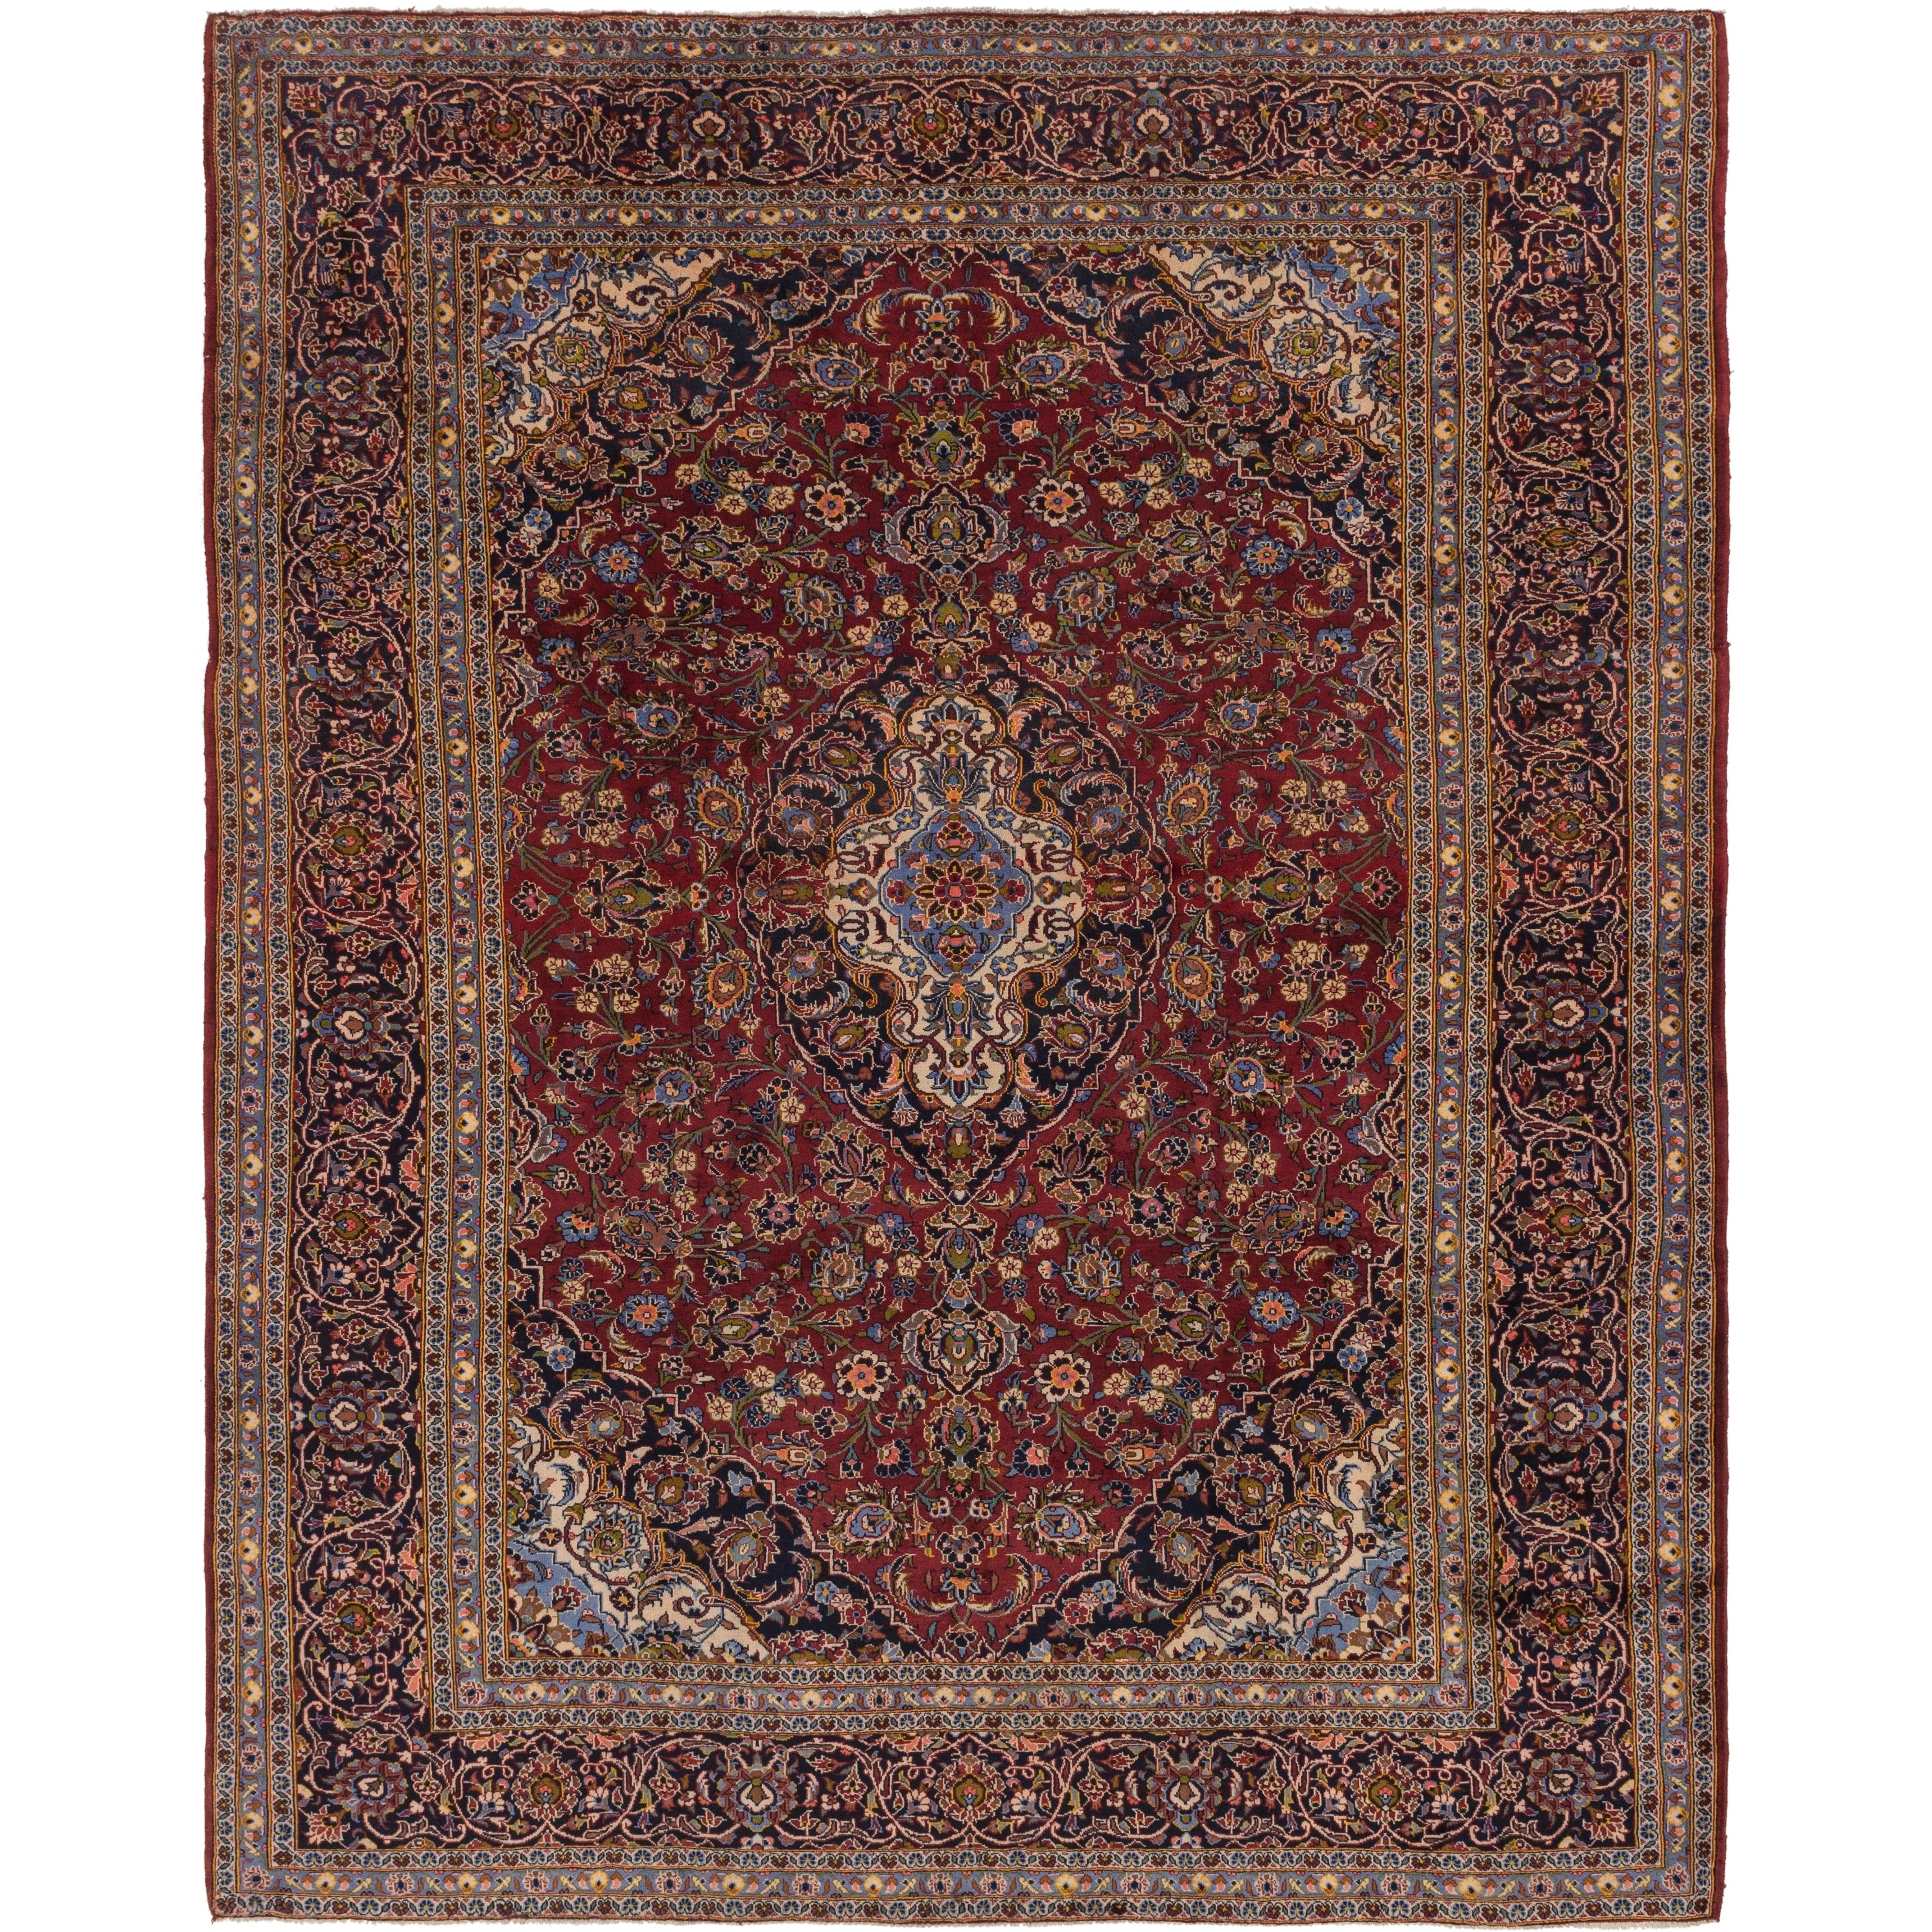 Hand Knotted Kashan Semi Antique Wool Area Rug - 10 x 12 7 (Red - 10 x 12 7)